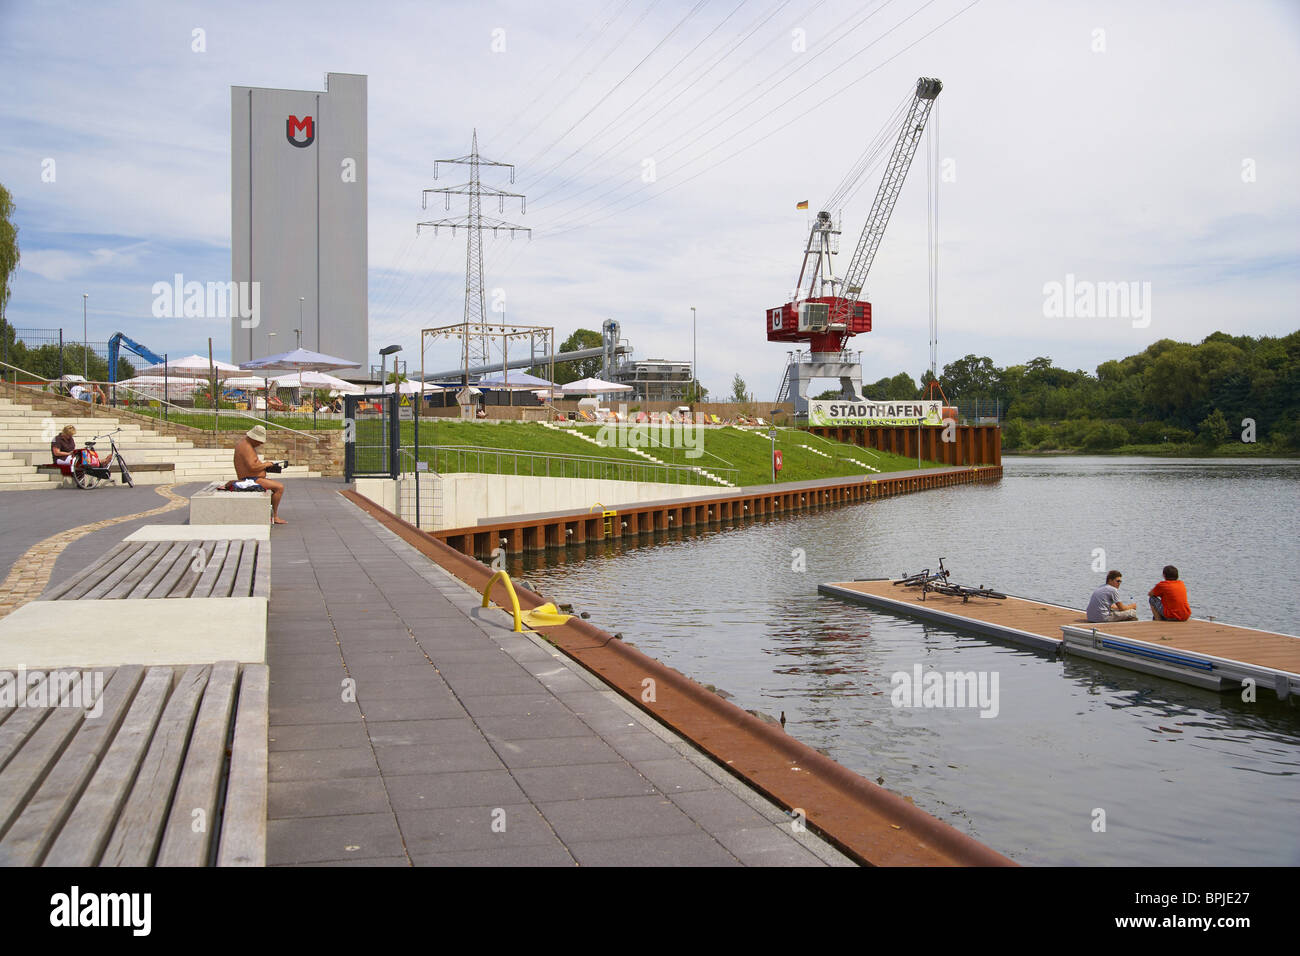 Bather at the harbour (Stadthafen) of Recklinghausen, Ruhrgebiet, North Rhine-Westphalia, Germany, Europe - Stock Image